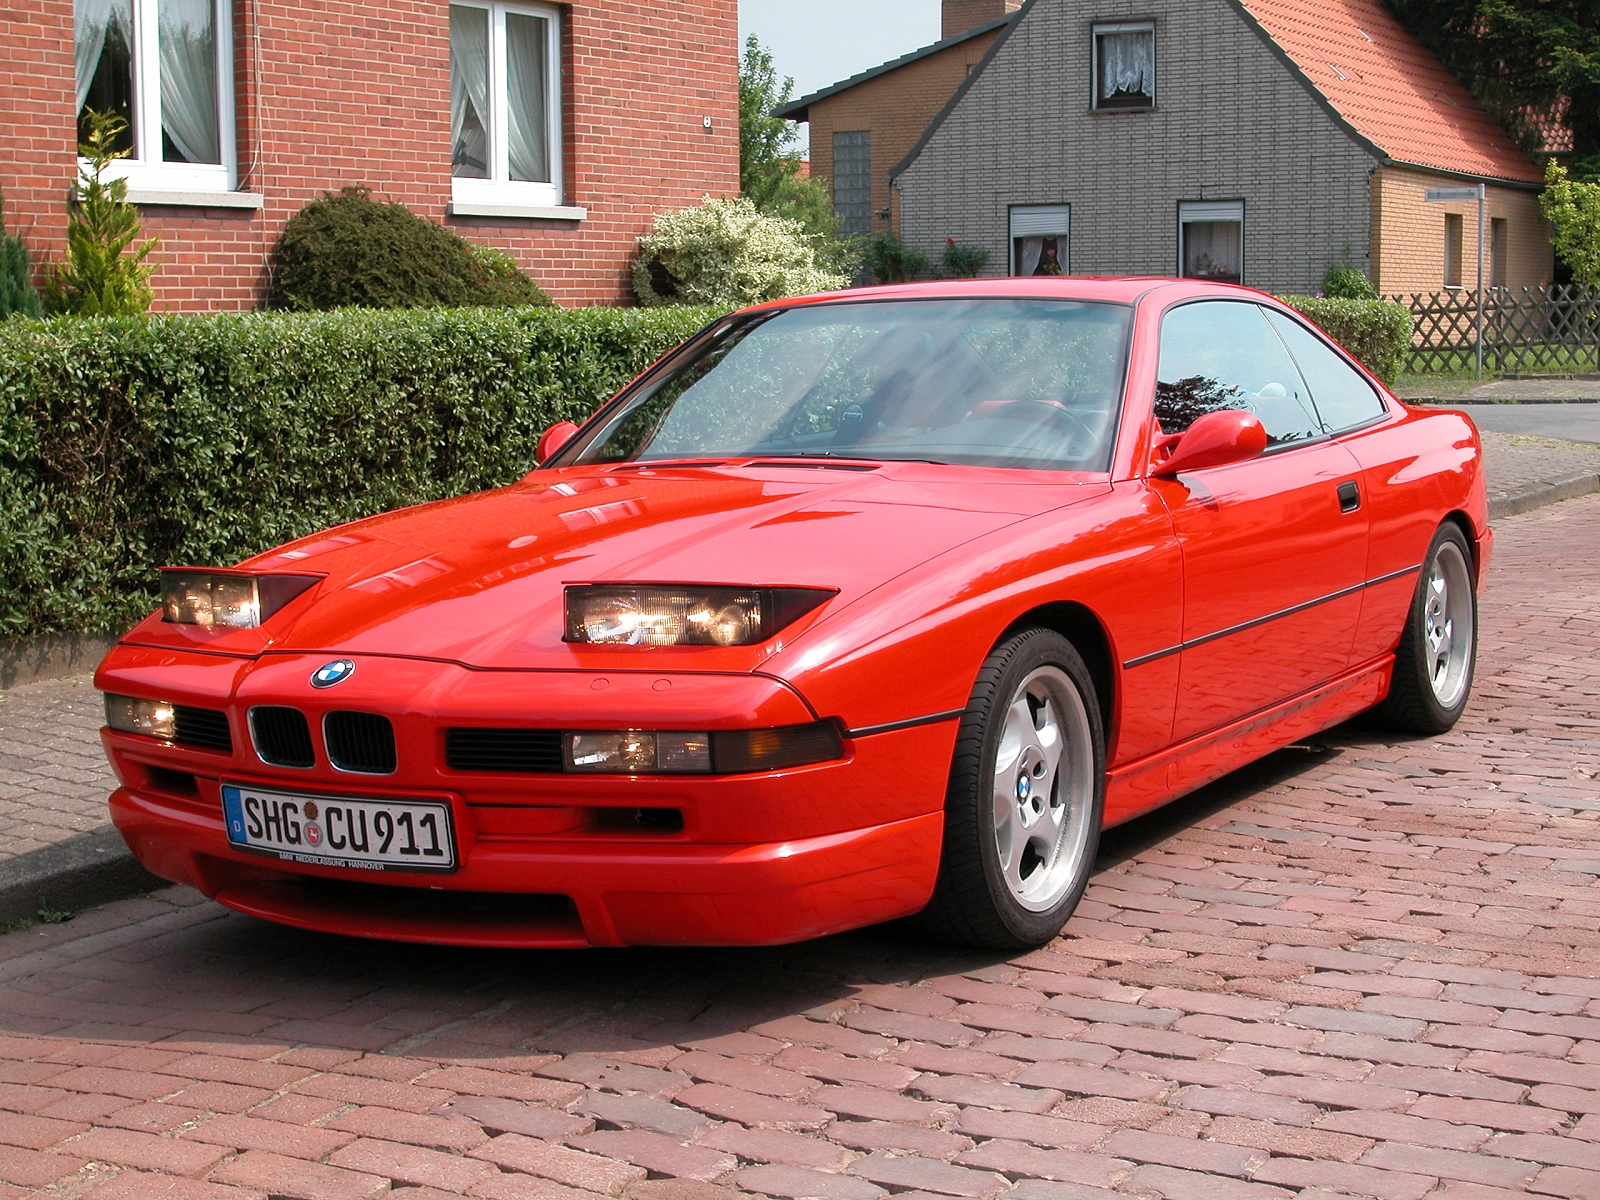 bmw 8 series e31 1990 1999 gallery and specs bimmerin. Black Bedroom Furniture Sets. Home Design Ideas